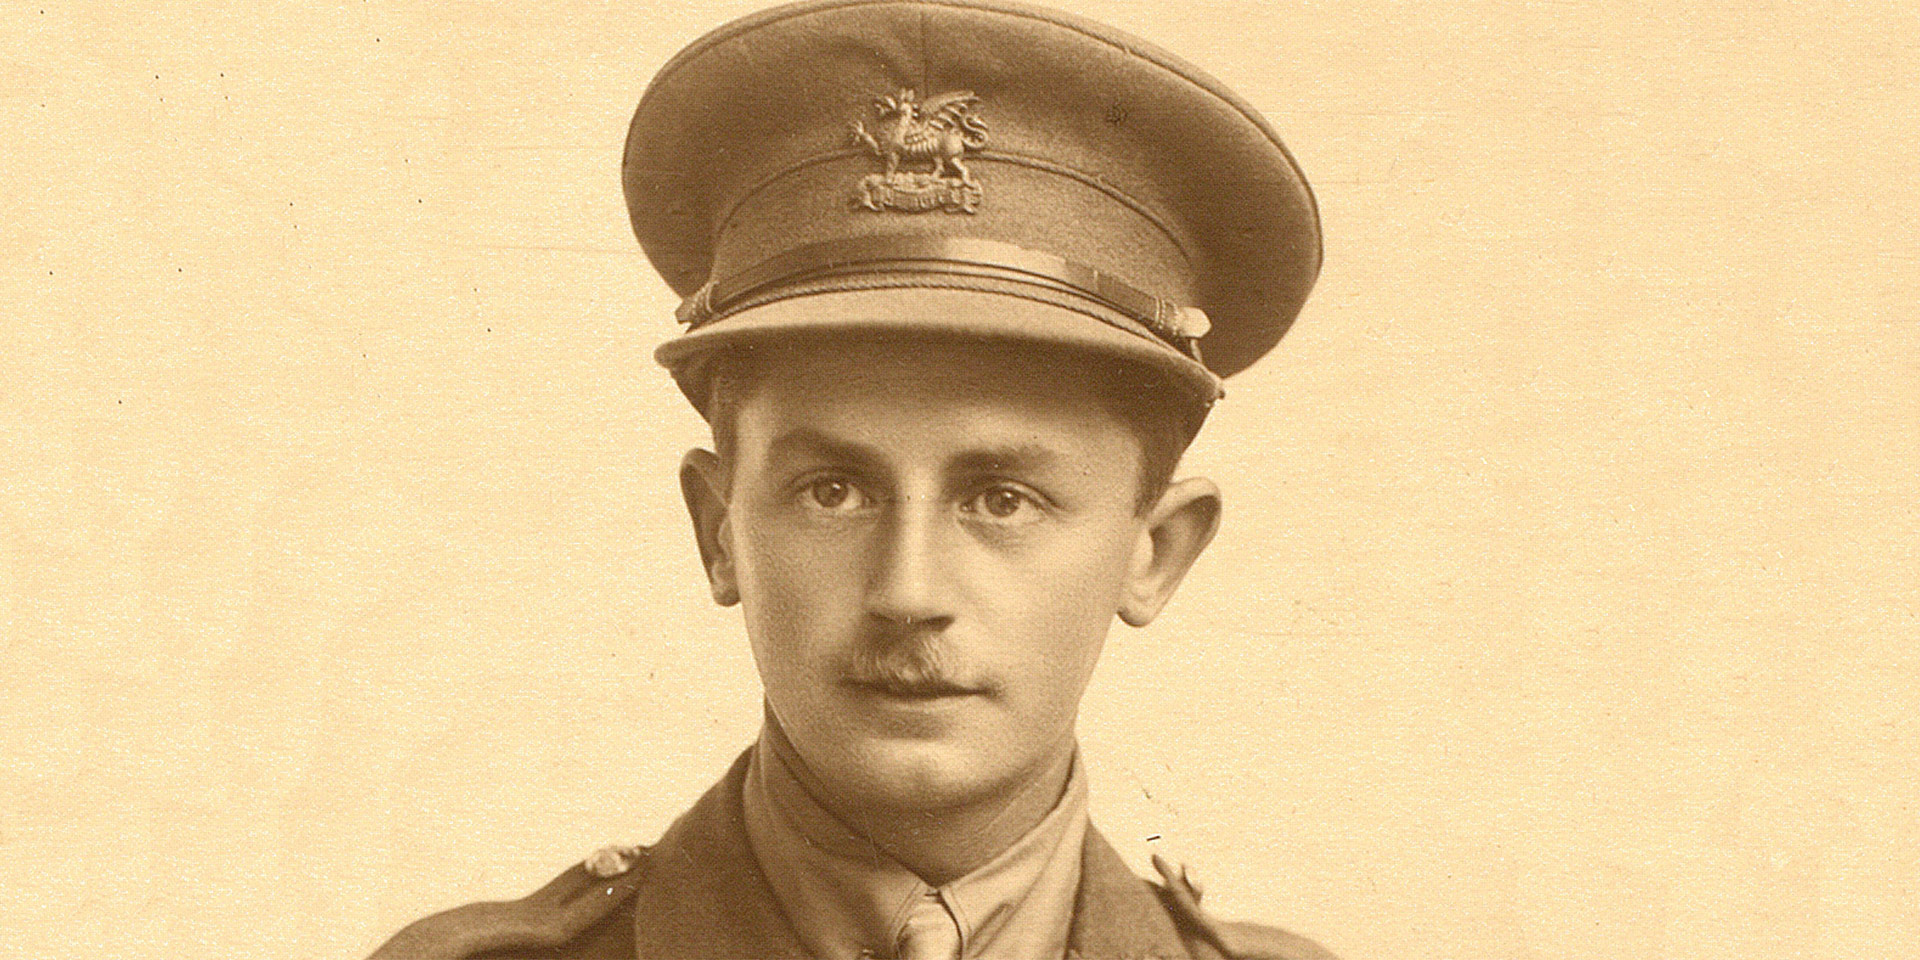 Lieutenant Bernard Ellis, The Buffs (East Kent Regiment), c1918